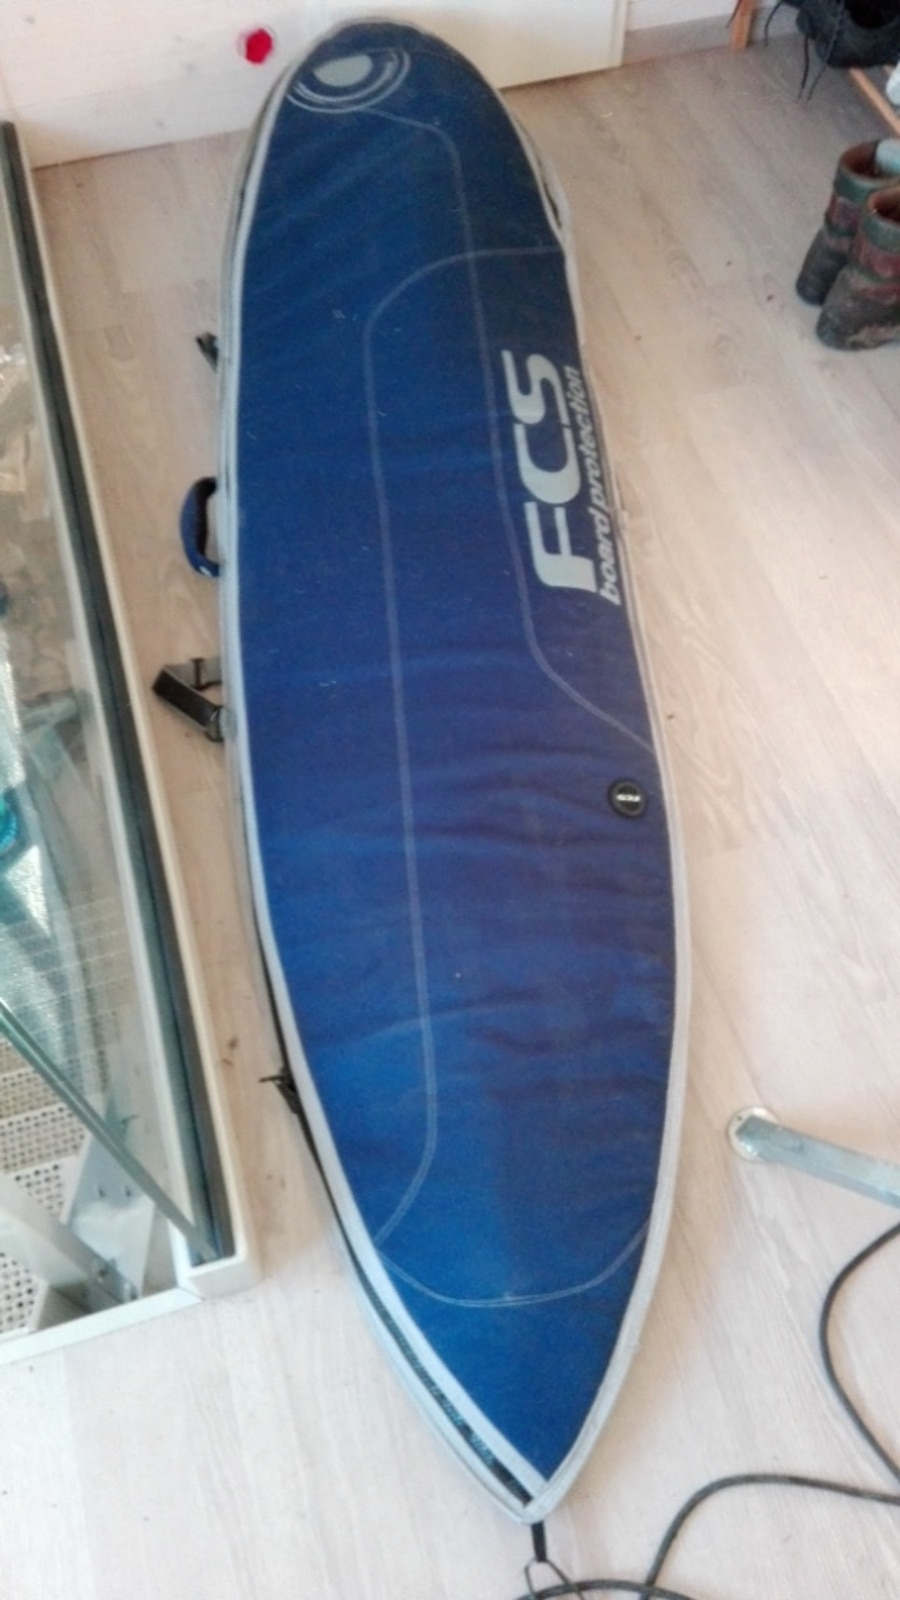 Annesley Surfebrett / Surfboard - Norge